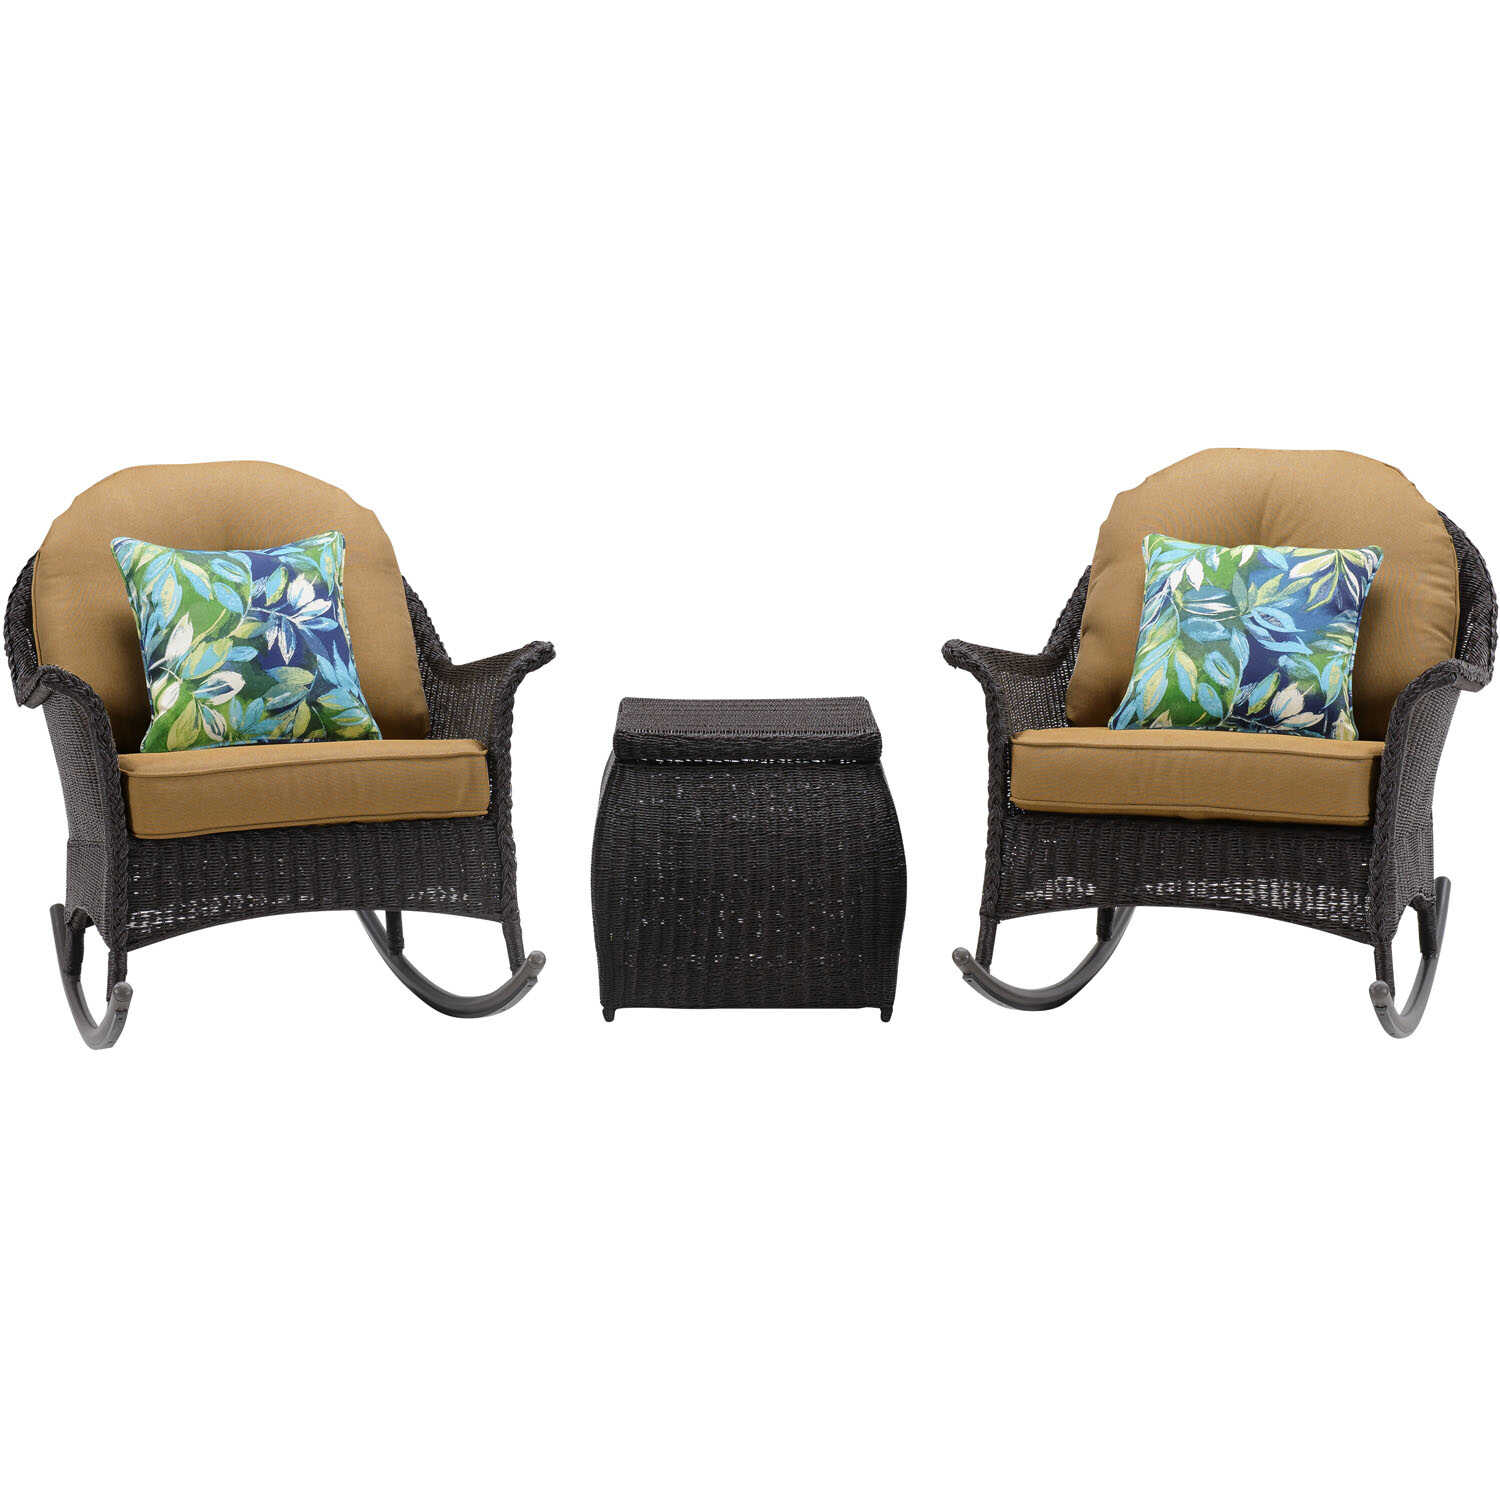 Hanover  San Marino  3 pc. Java  Steel  Patio Set  Country Cork